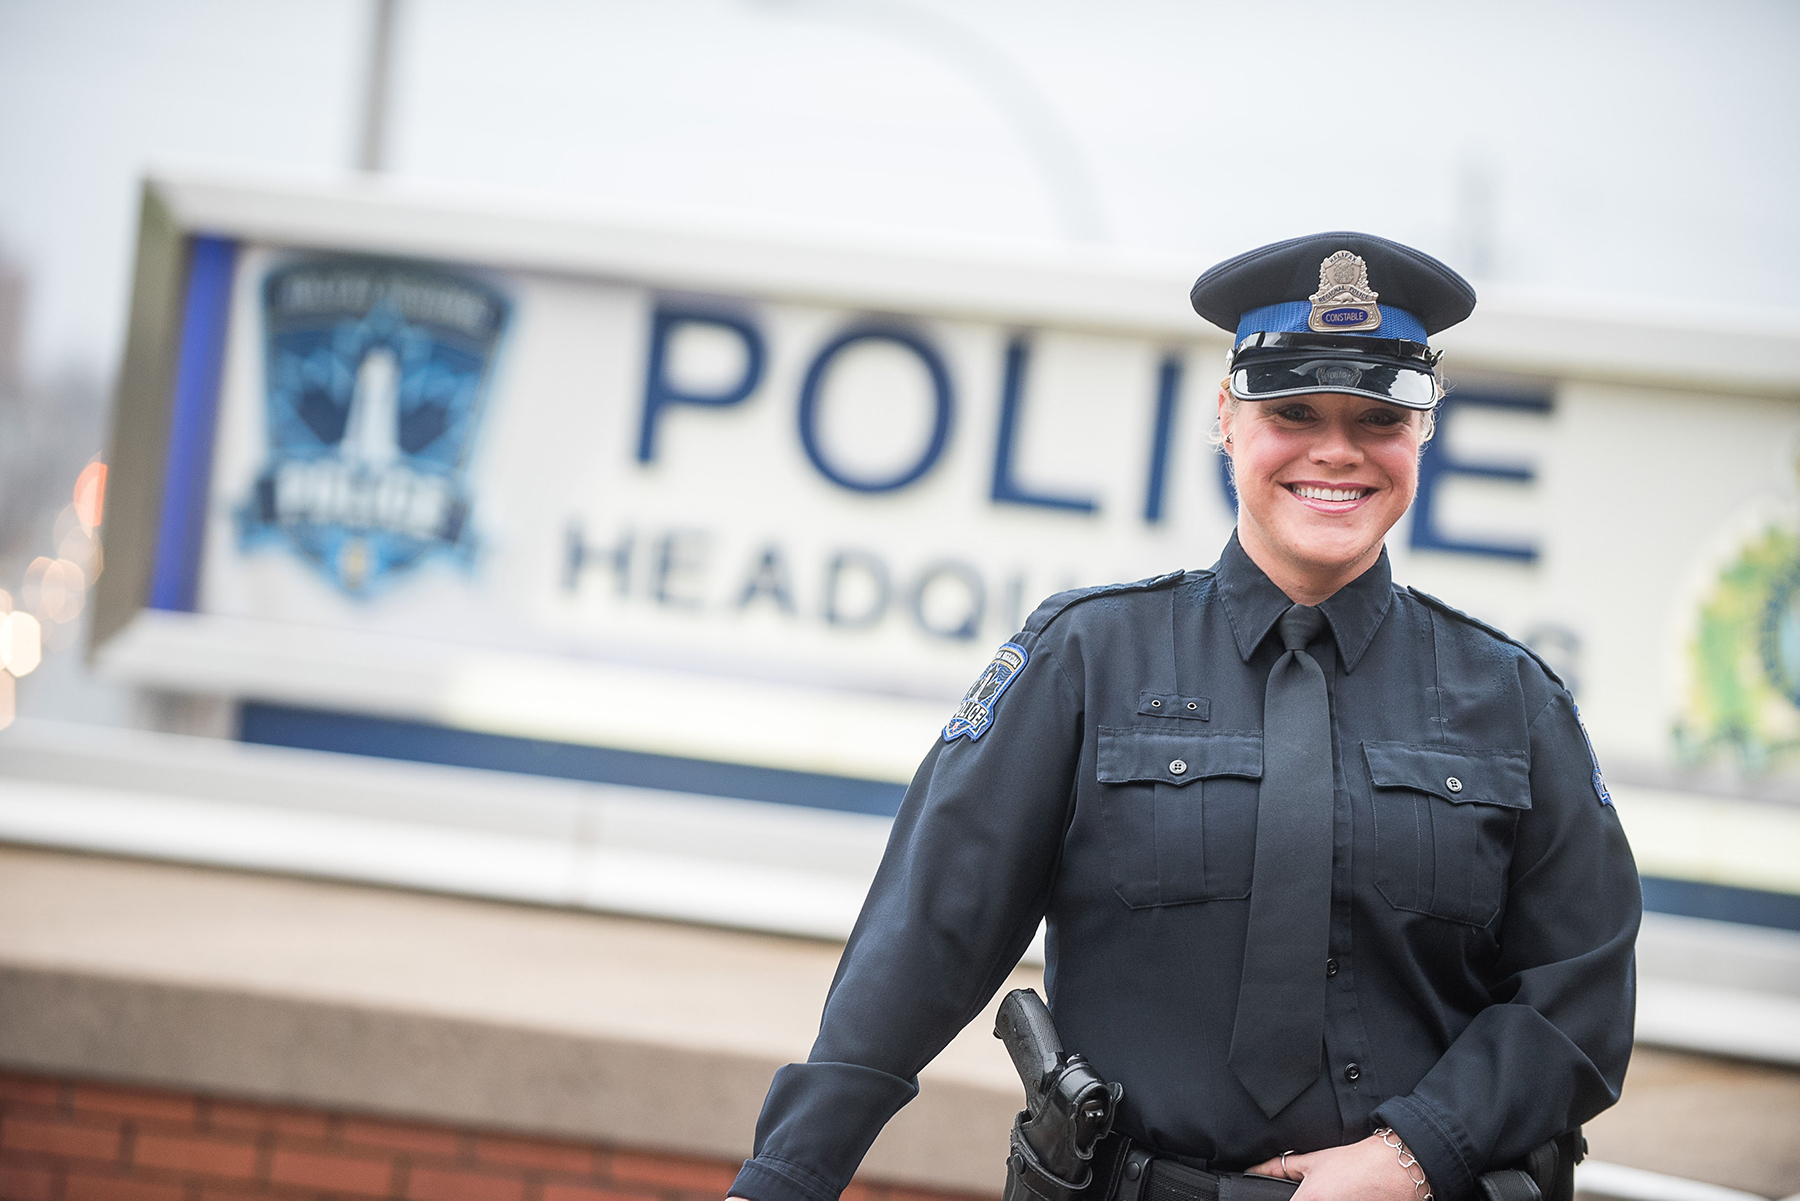 A photo of a female police officer